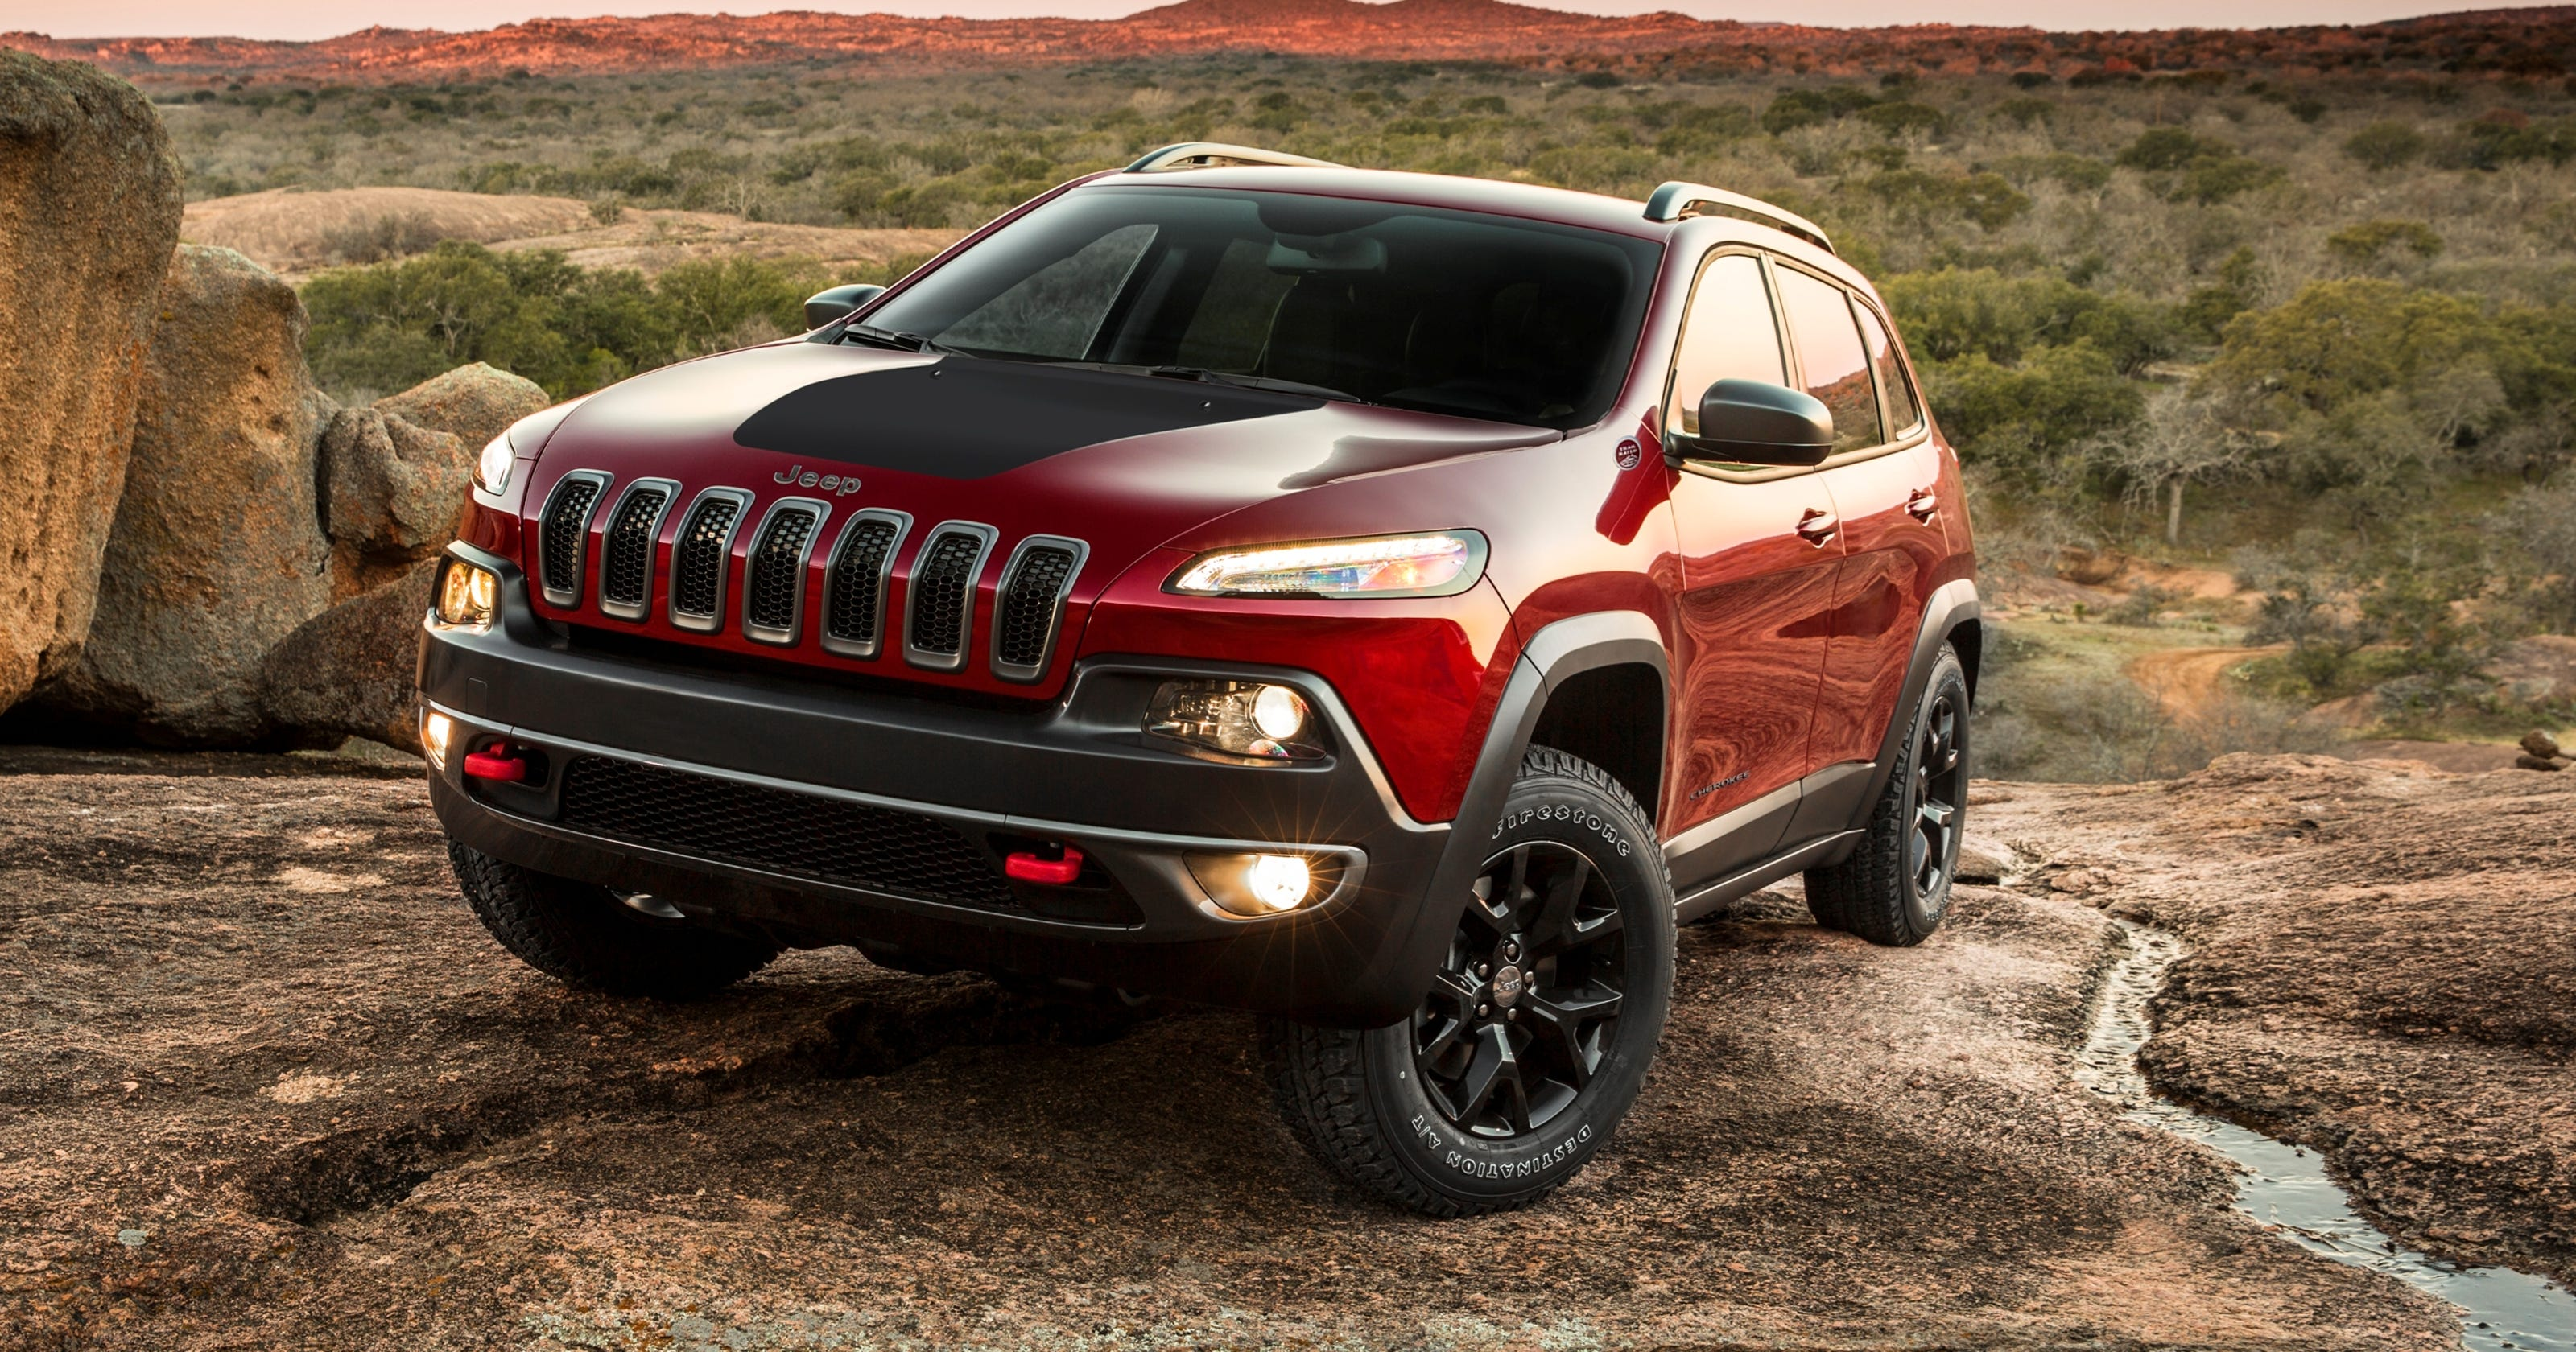 price for inventory tx jeep fort cherokee exterior latitude sale new view worth moritz plus front